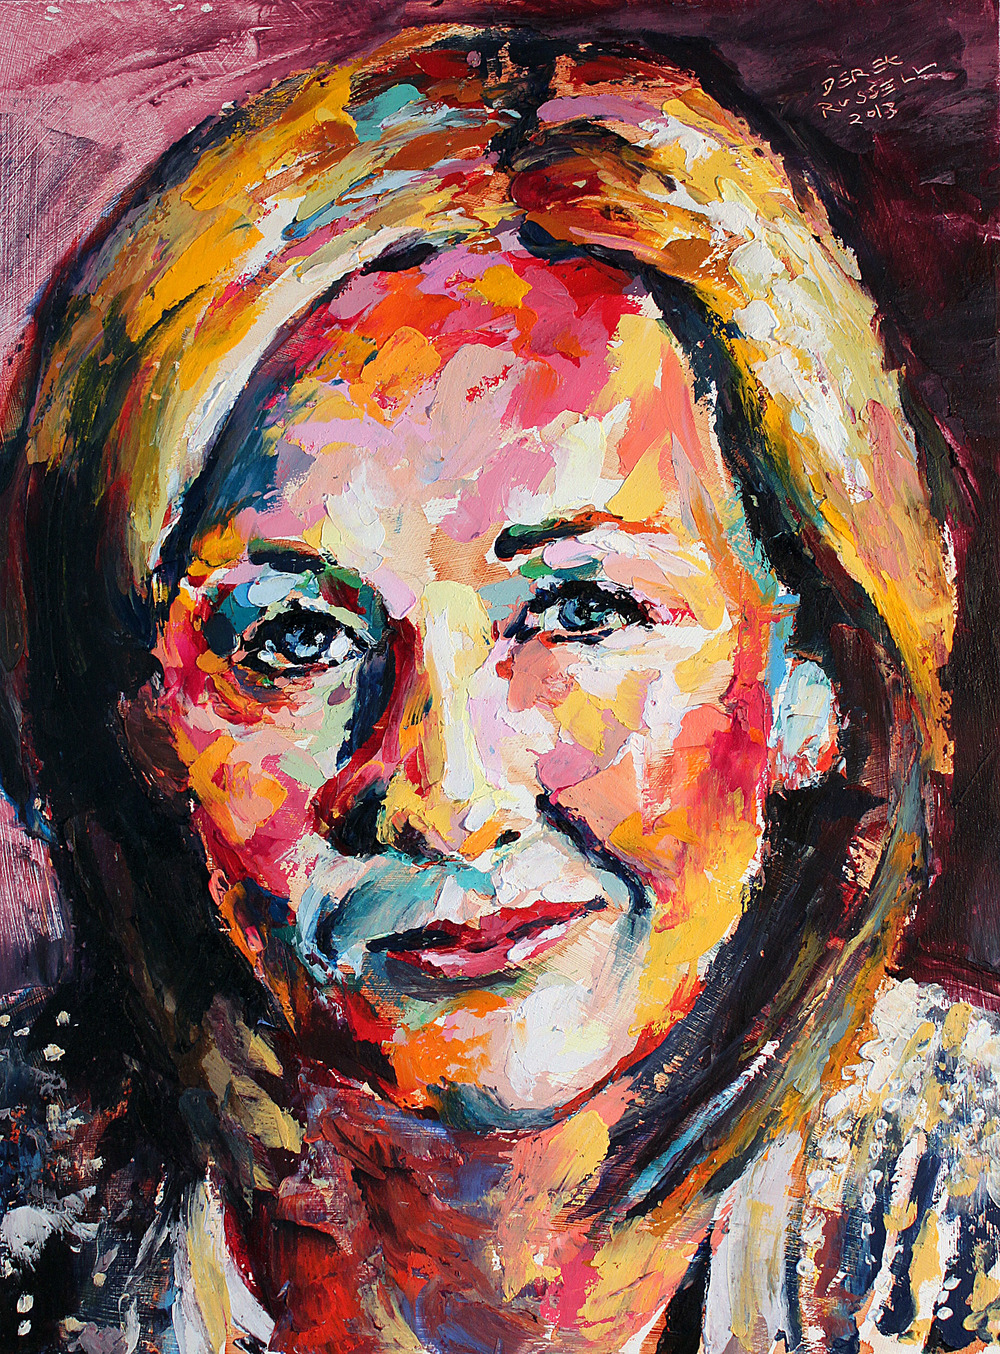 J.K. Rowling Original Portrait Pop Art Painting by Derek Russell